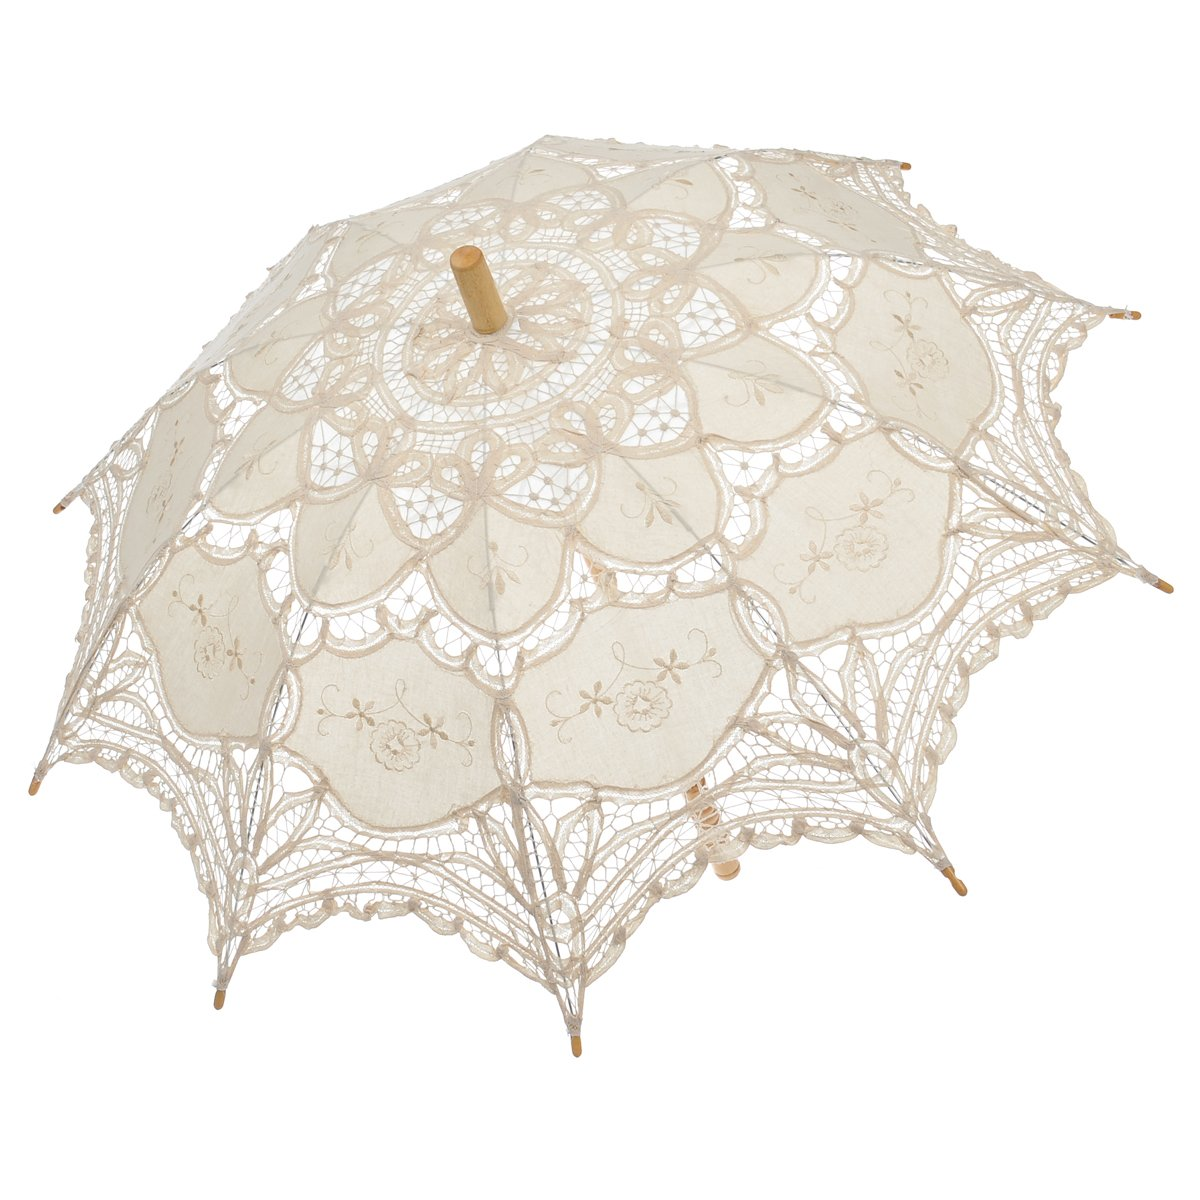 Remedios(16 colors) Lace Parasol Umbrella for Wedding Bridal Decoration Ivory